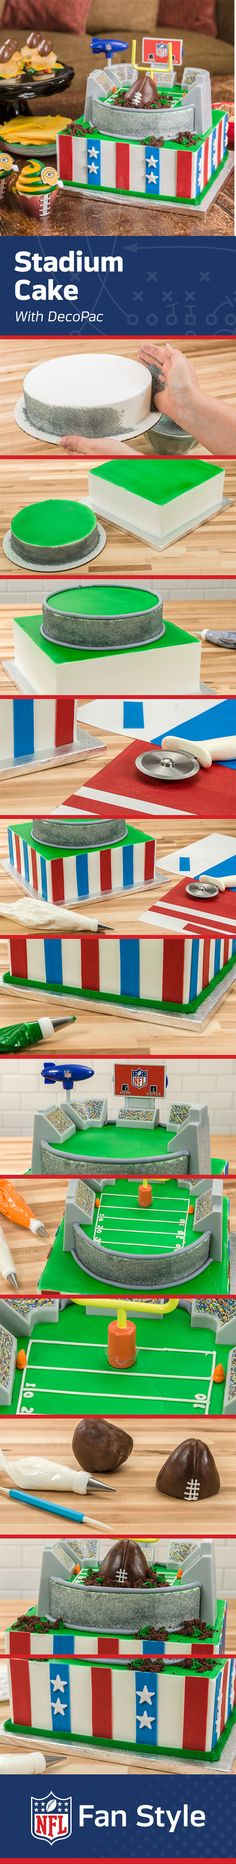 If you can't make it to the stadium, this Stadium Cake recipe is perhaps the next best thing. Decorate this dessert with piping, fondant, and accessories from DecoPac and you're ready to one-up all the other fans at your next Homegate. #NFLFanStyle #Contest